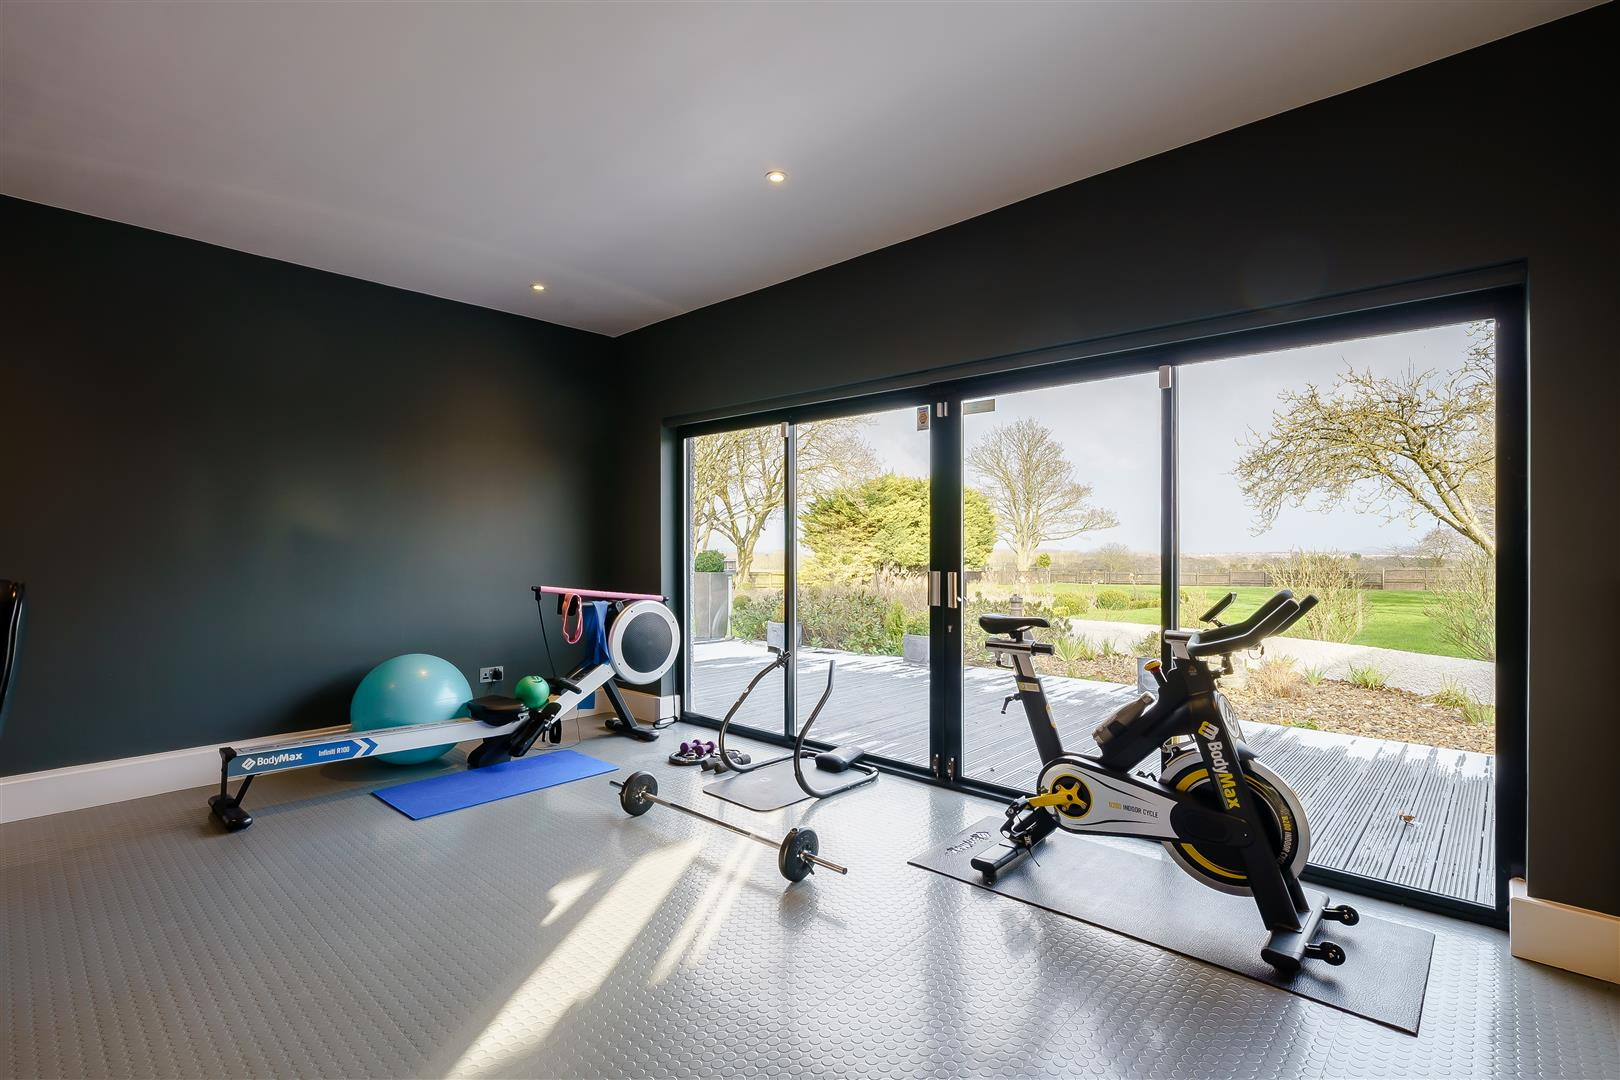 Rowstock Manor - Gallery Image 13 - Gym